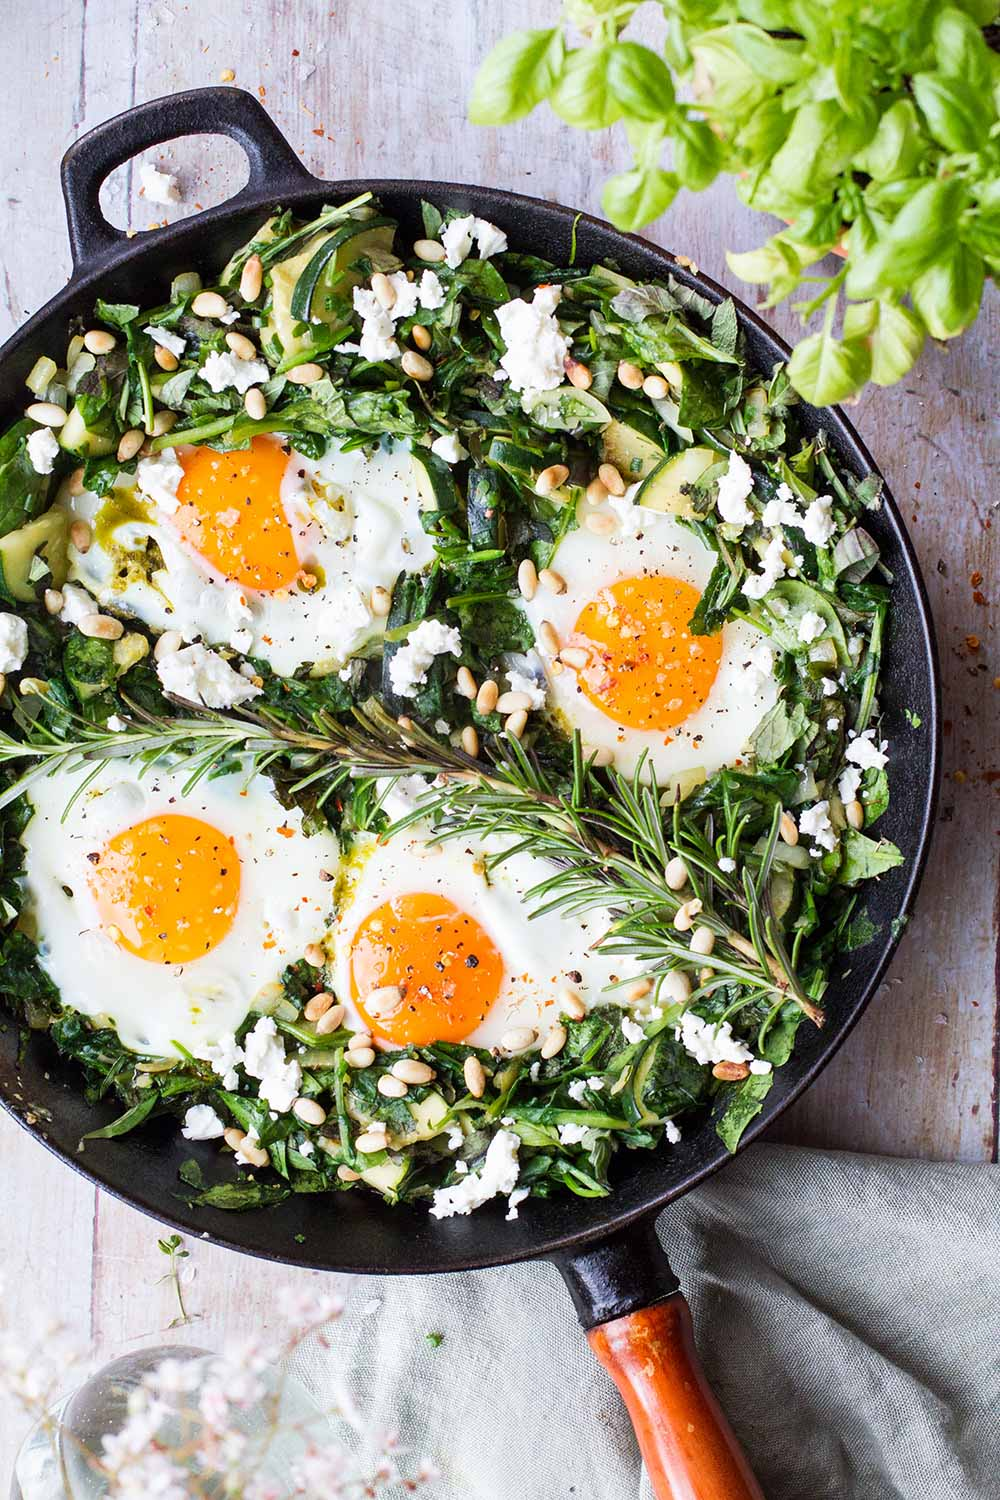 Cast iron skillet with green spinach bed and four sunny-side-up eggs.